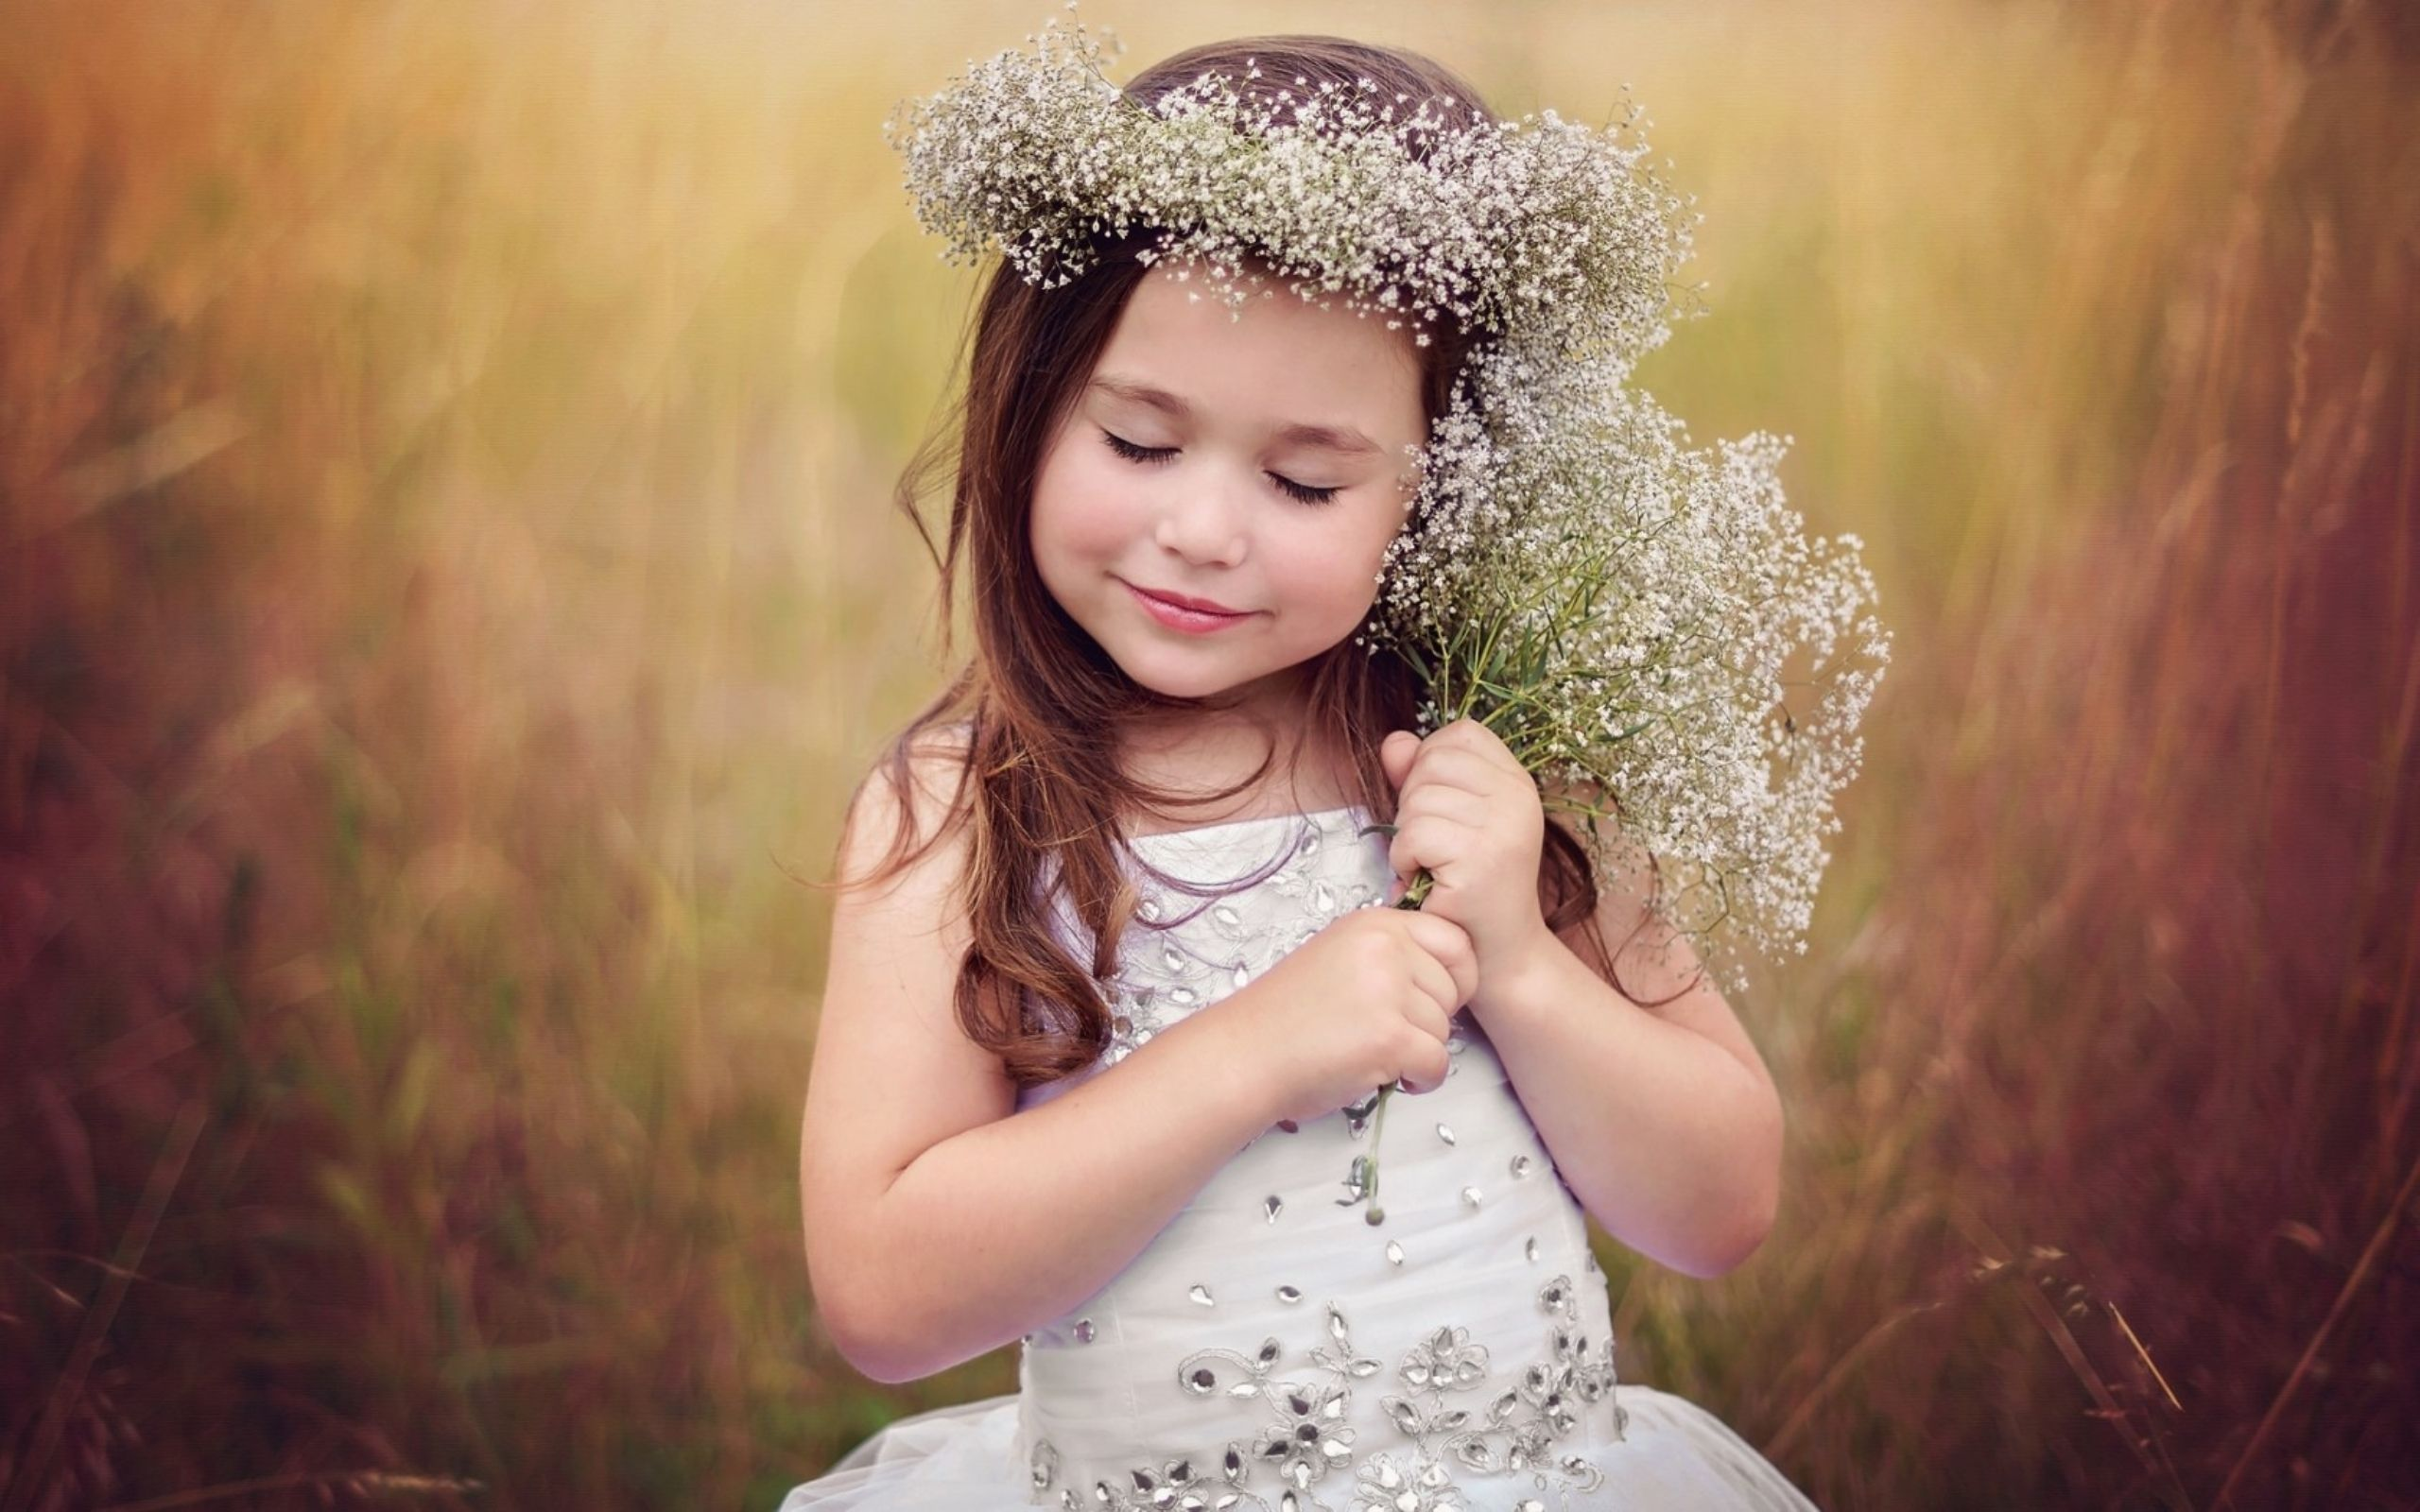 Cute Little Girl Hd Wallpapers Little Girl Wallpaper Baby Girl Wallpaper Cute Girl Wallpaper